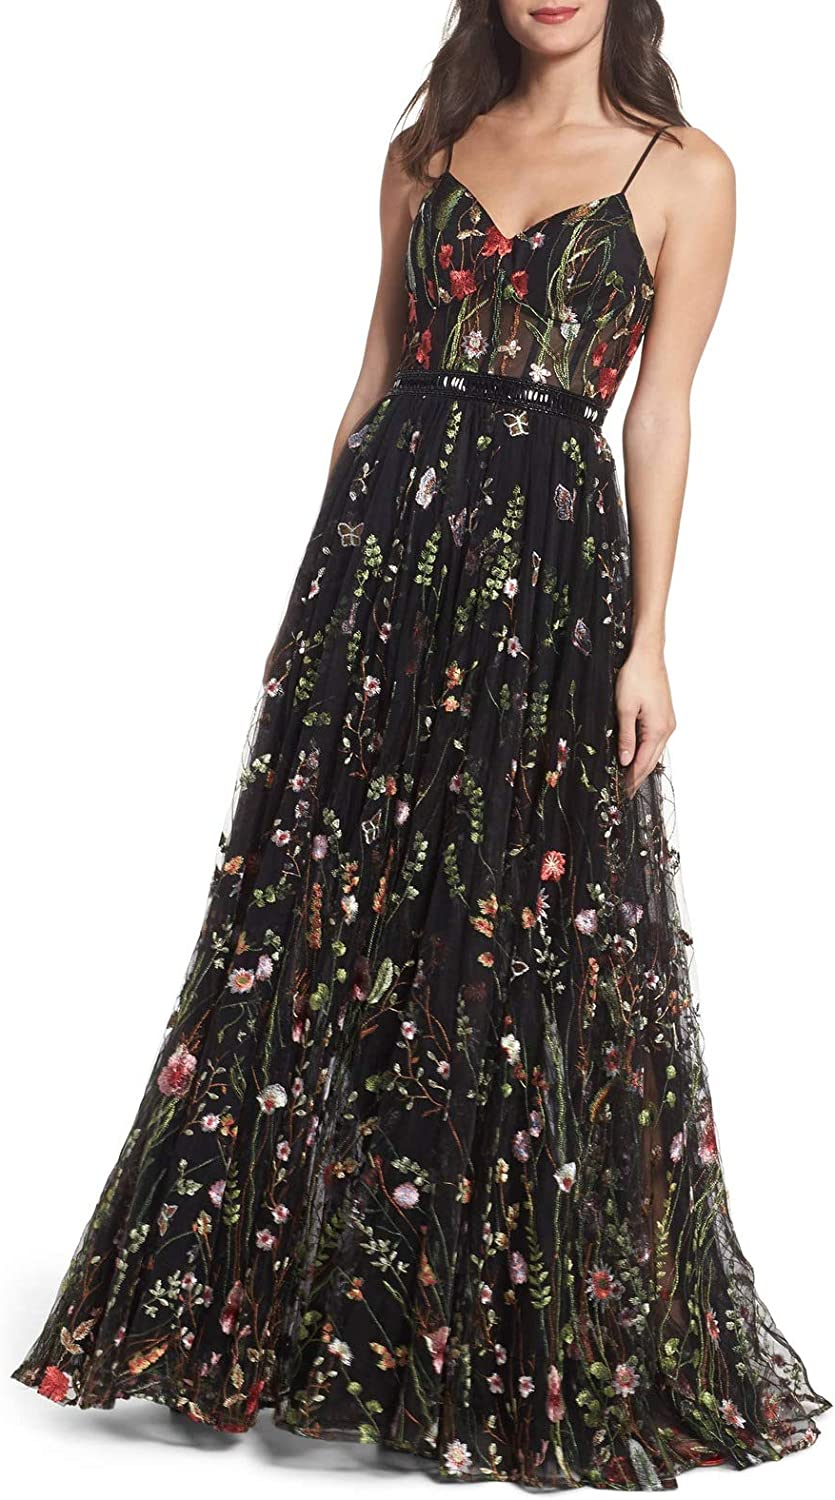 Aishanglina Women's Embroidered Bustier Evening Party Data Gown Wedding Cocktail Dress